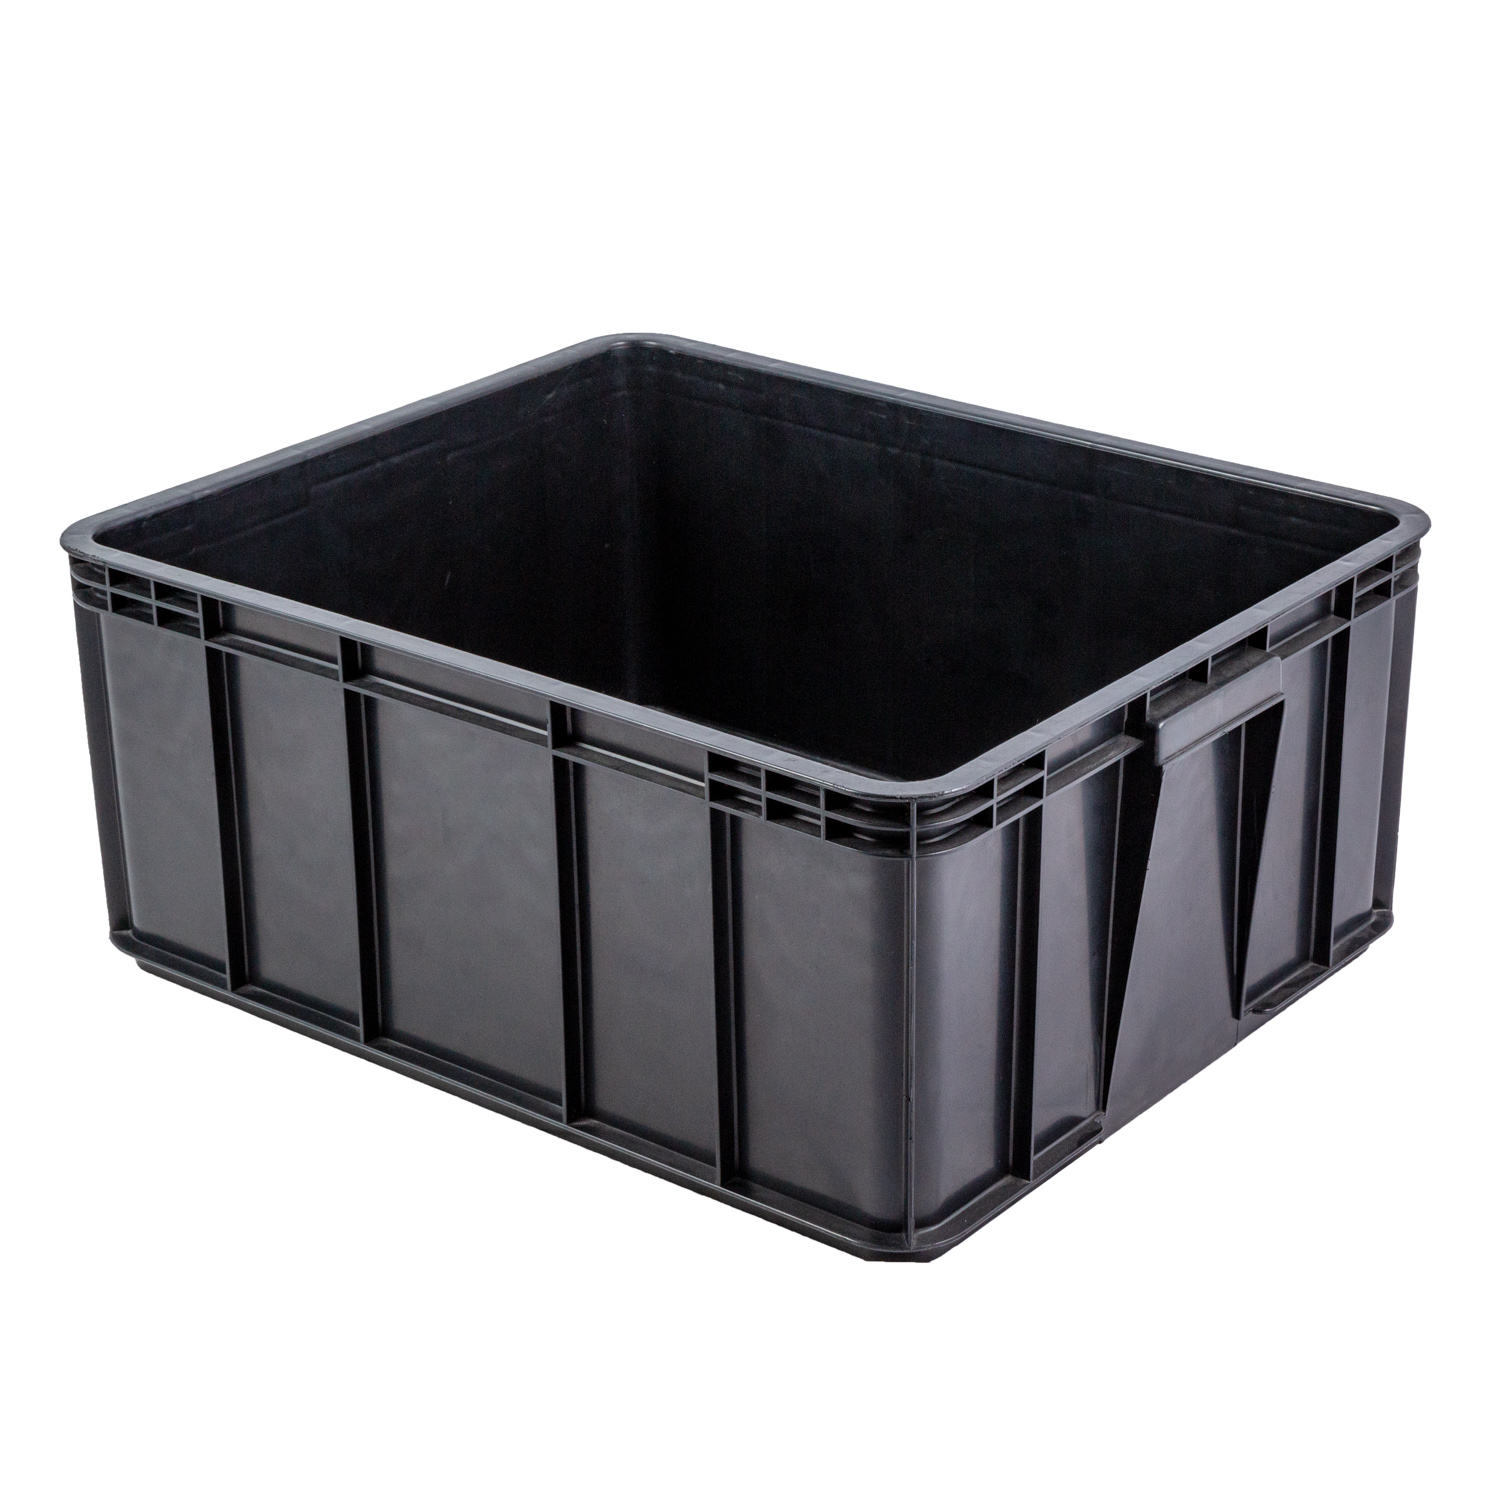 <span class=keywords><strong>Esd</strong></span> Box Verpakking Componenten Recycling <span class=keywords><strong>Bakken</strong></span> <span class=keywords><strong>Esd</strong></span> Plastic Opbergbakken Anti Statische Containers